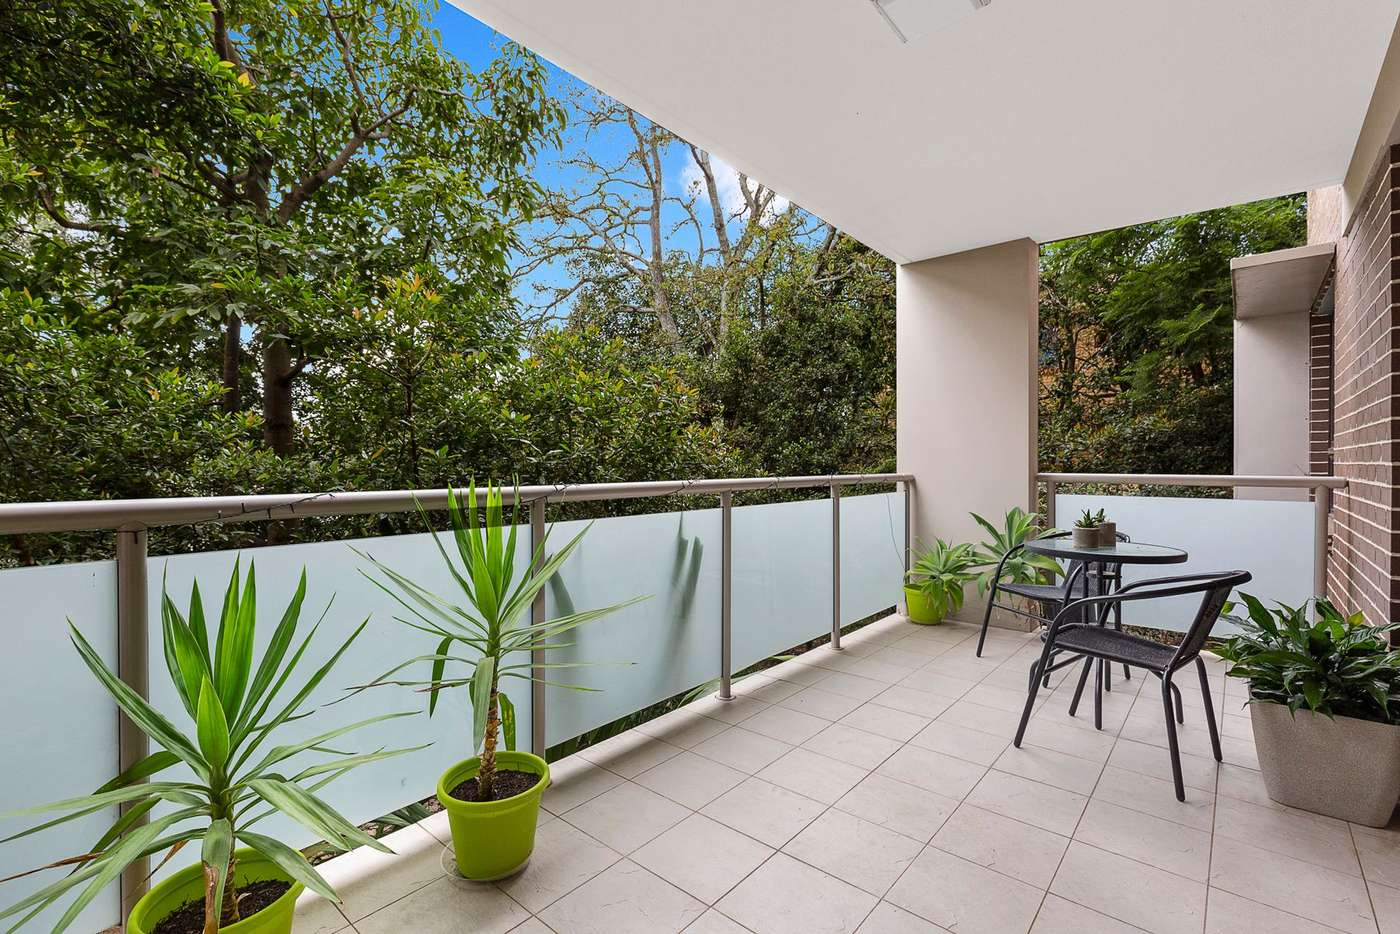 Main view of Homely unit listing, 25/6-8 Banksia Rd, Caringbah NSW 2229